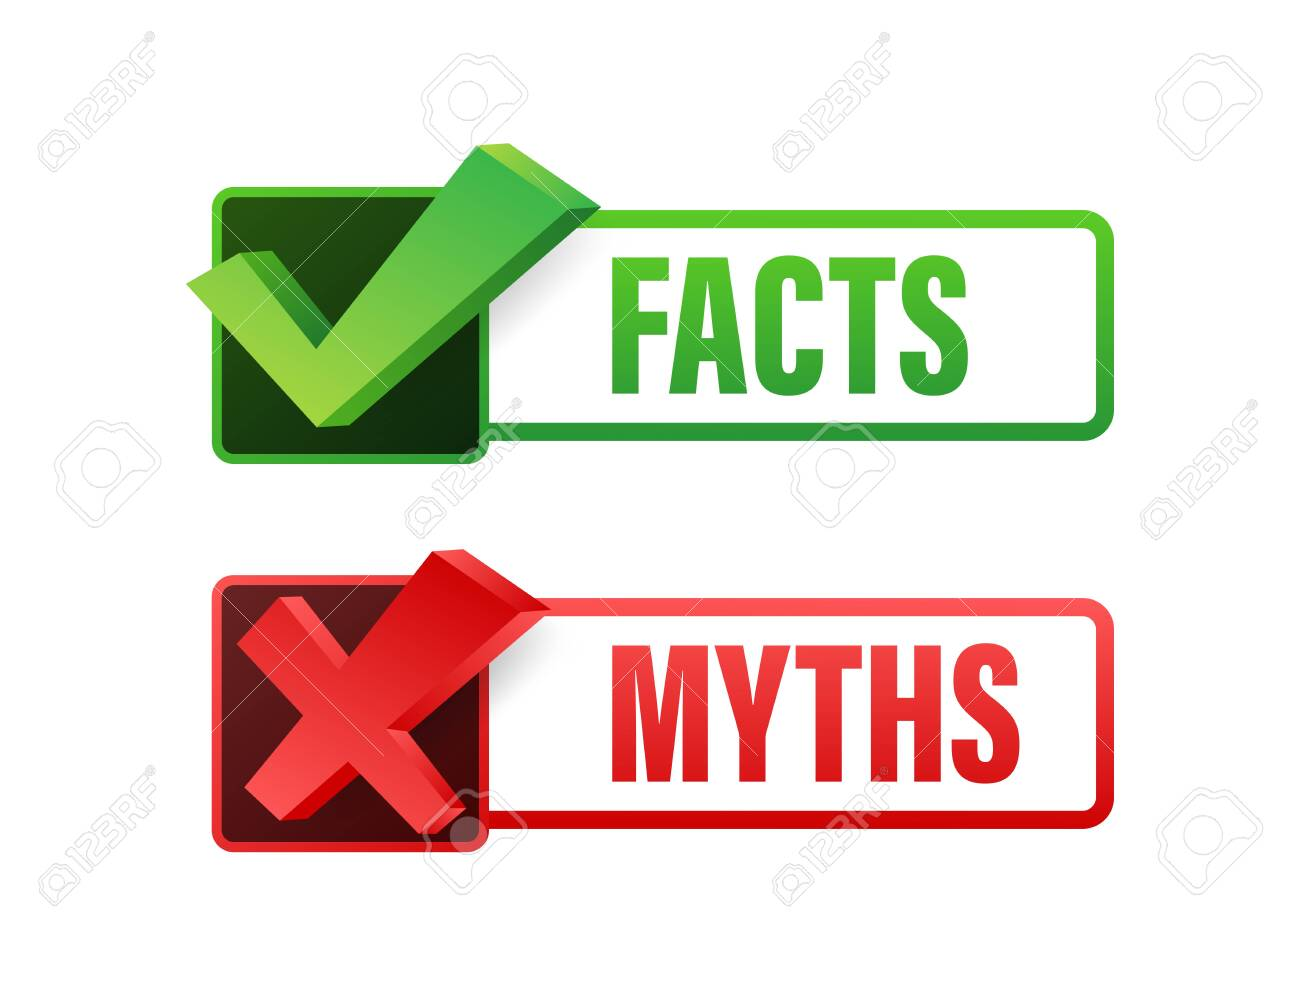 Myths facts. Facts, great design for any purposes. Vector stock illustration - 144552038